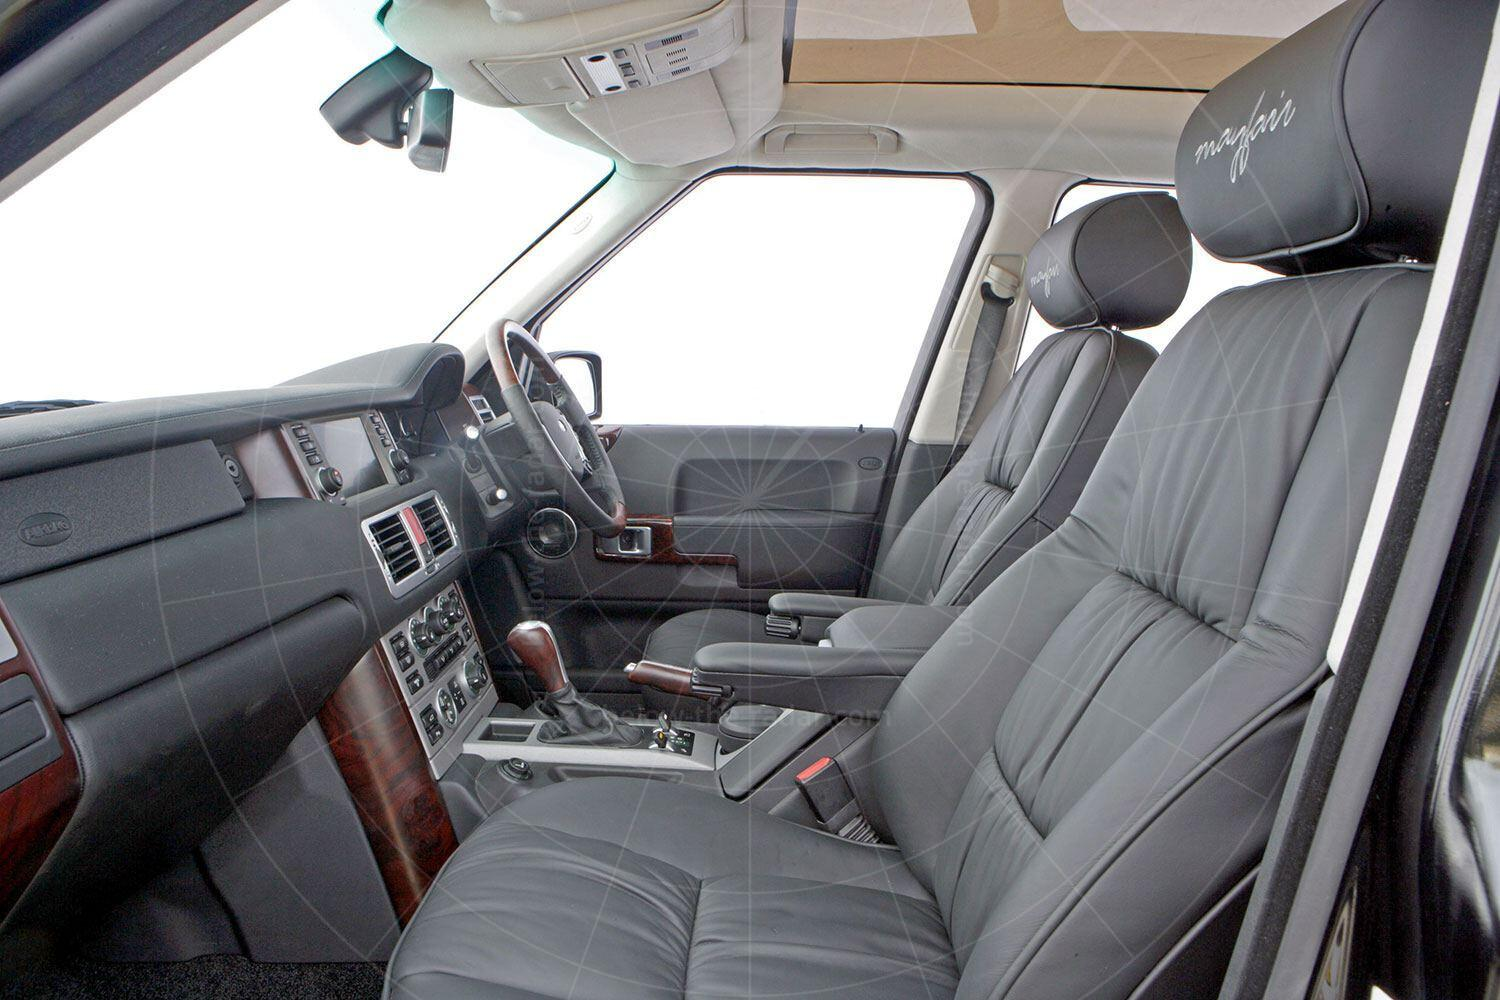 Range Rover Mayfair interior Pic: magiccarpics.co.uk | Range Rover Mayfair interior